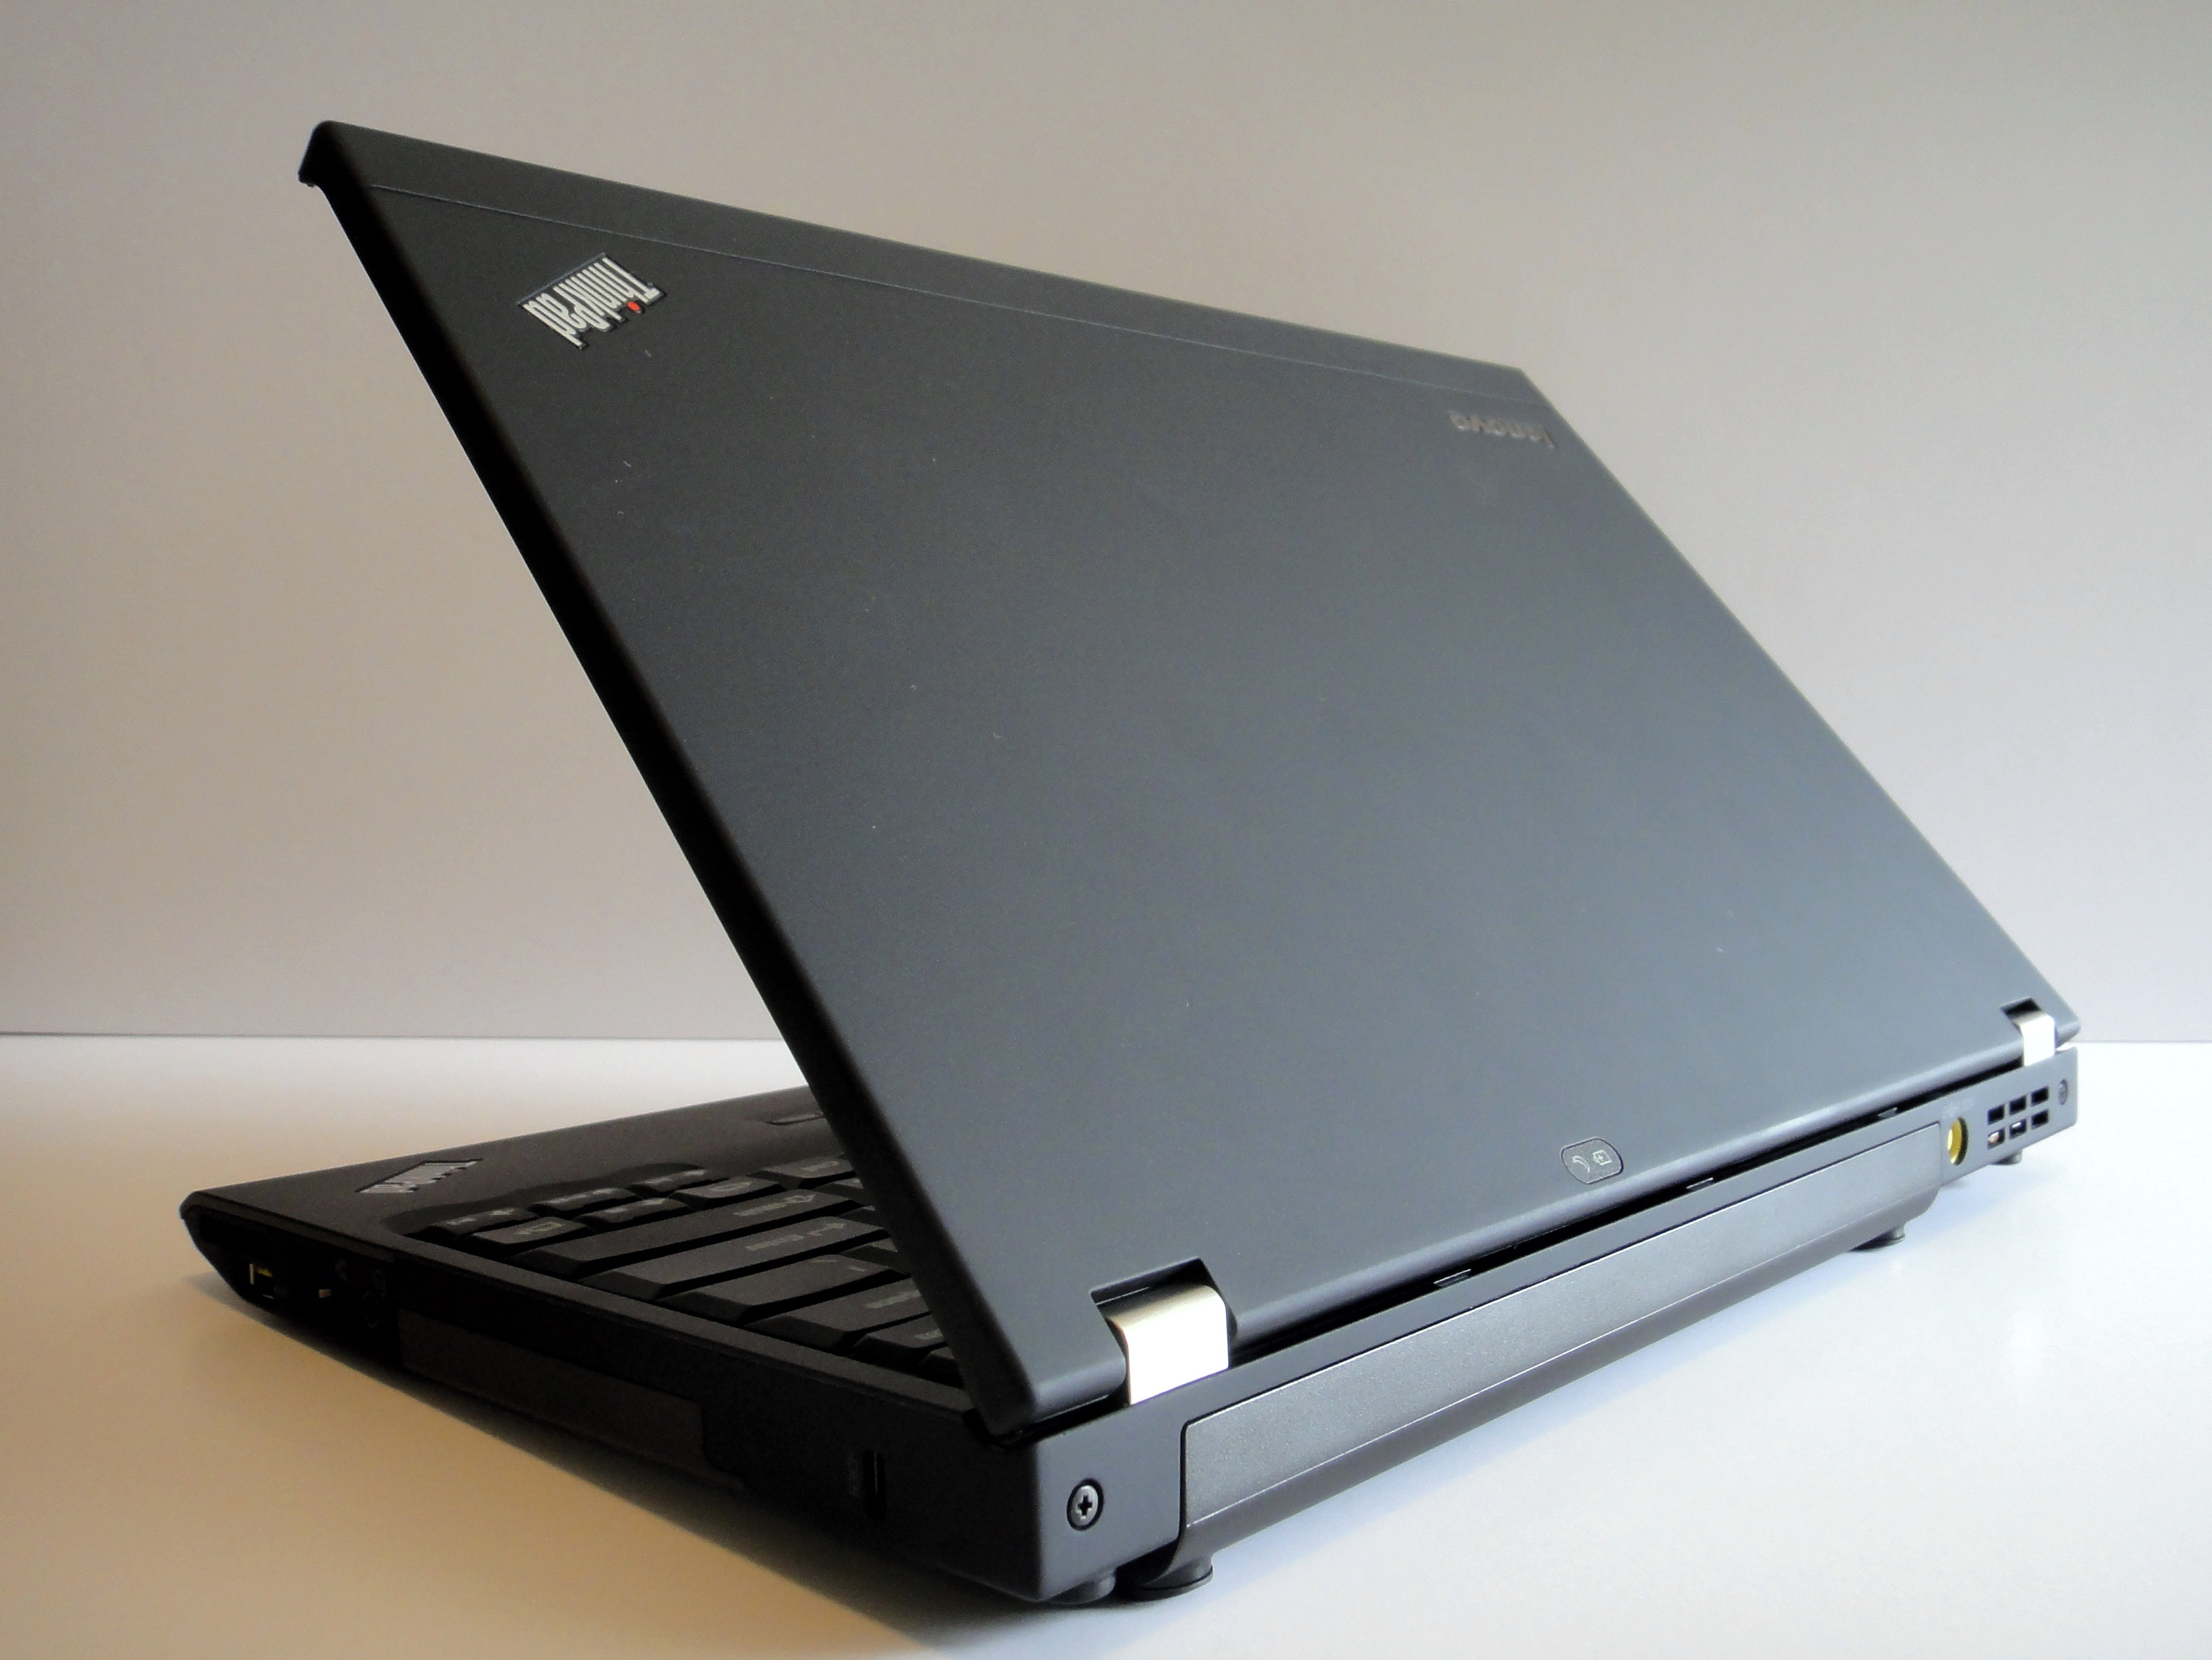 Lenovo ThinkPad Edge 14 Huawei EM660 WLAN Windows 8 X64